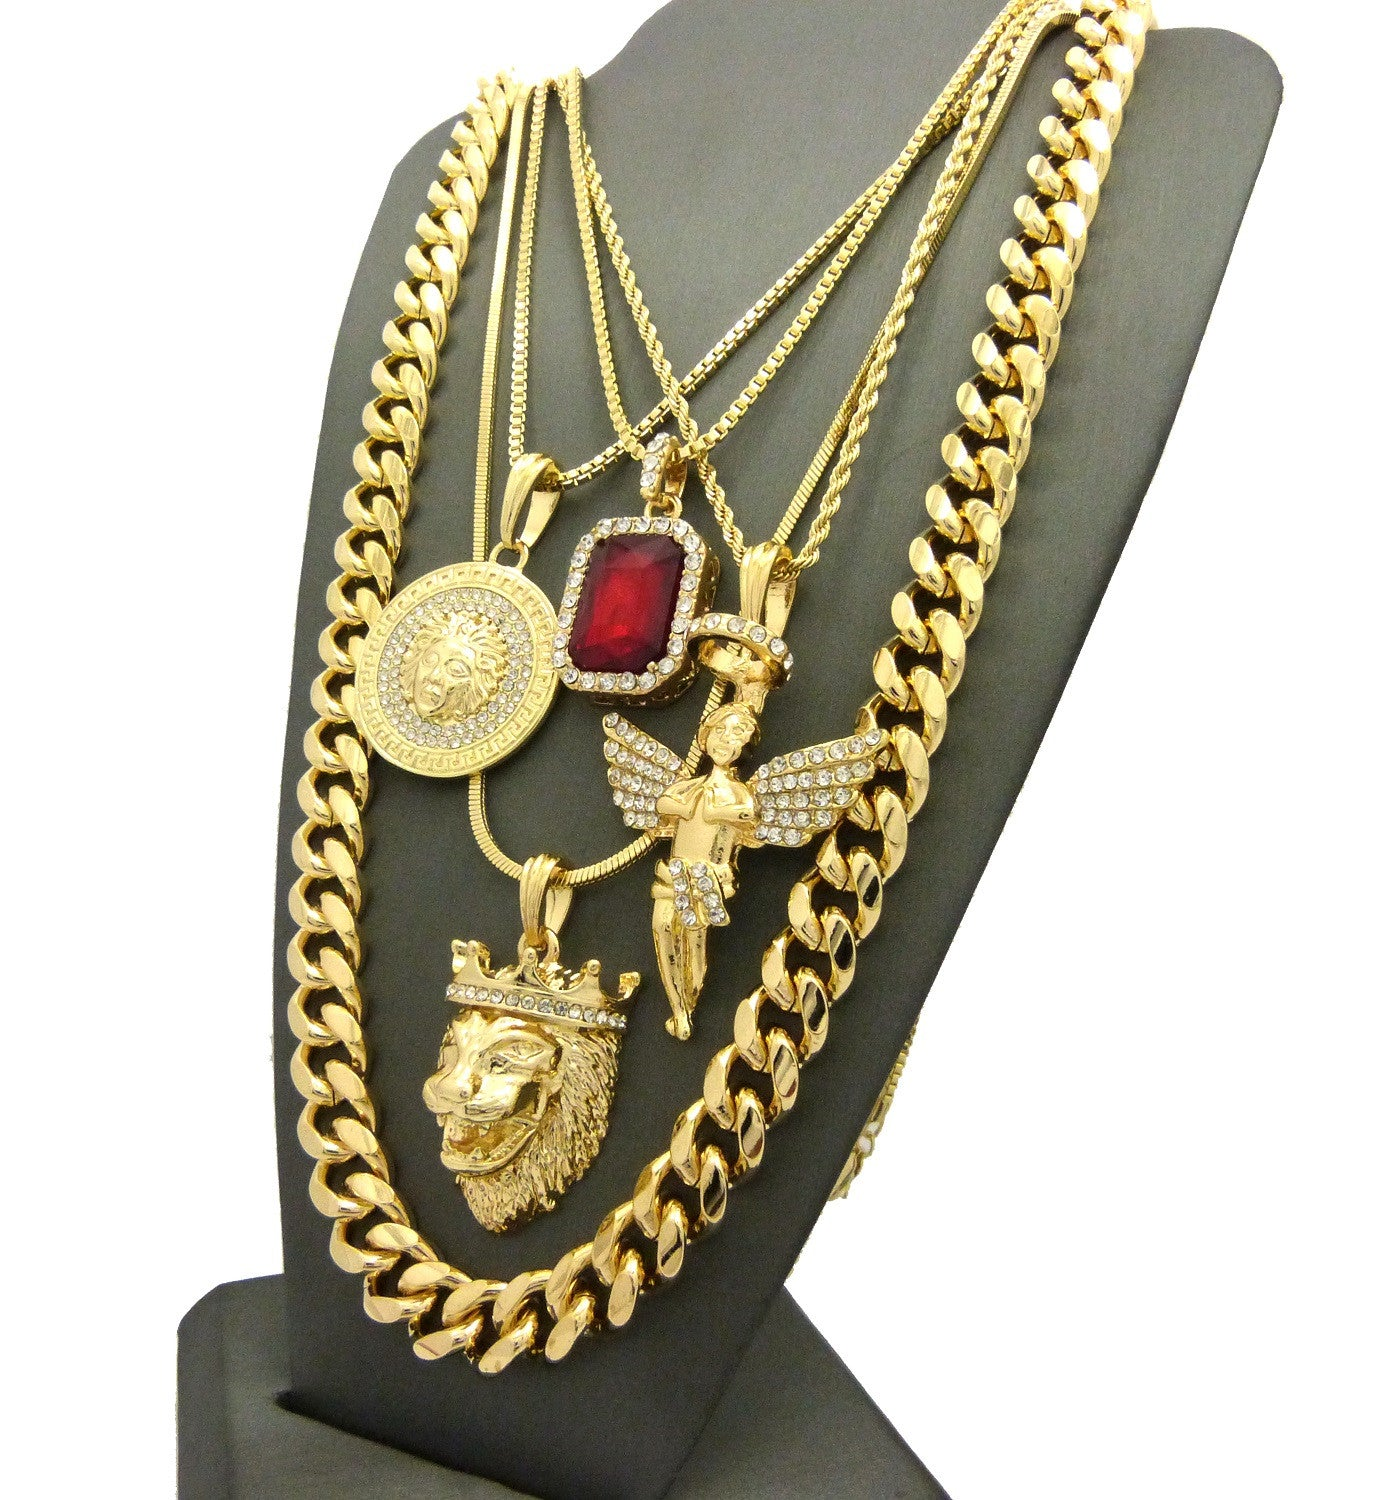 quality jupiter franco jewelry yellow categories product inc jewellery gold tags sku close chain collections